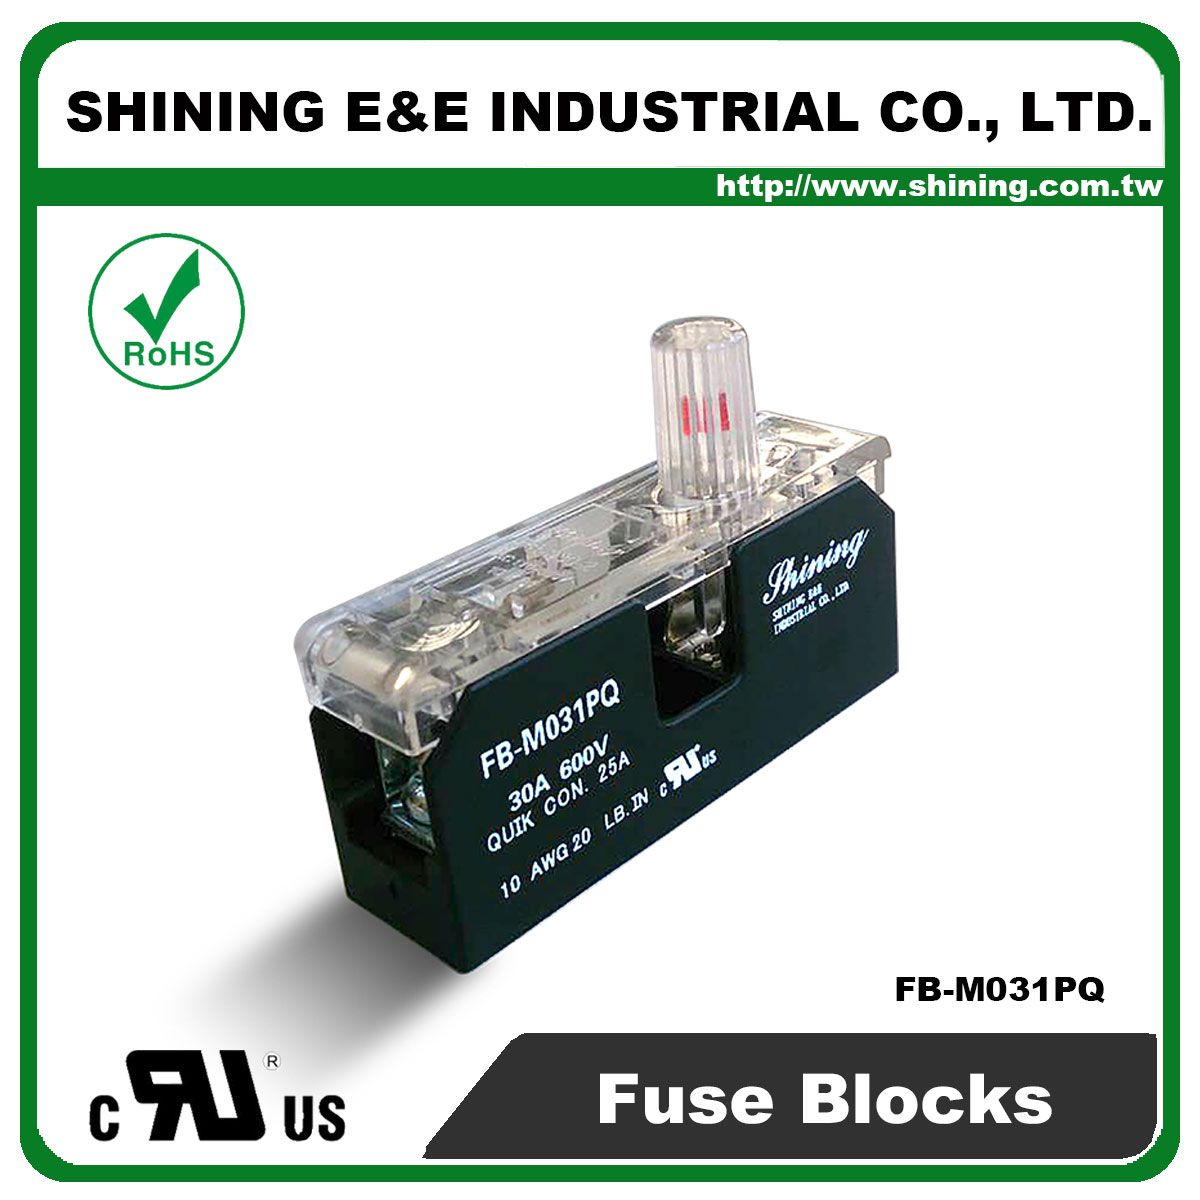 ul fuse box ul printable wiring diagram database ul fuse box wire get image about wiring diagram on ul fuse box